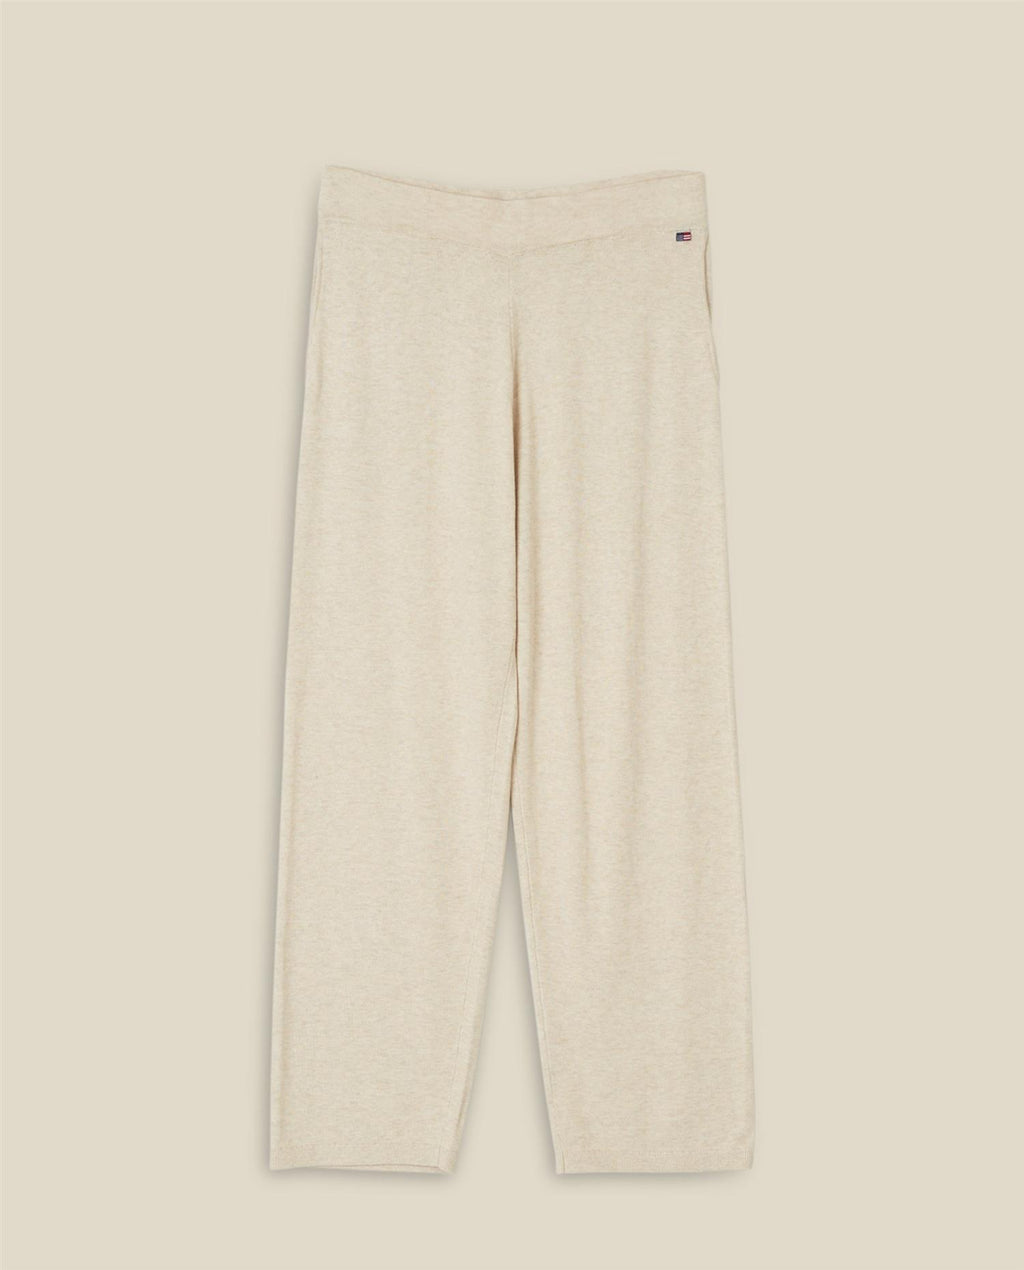 Des Organic Knitted Pants